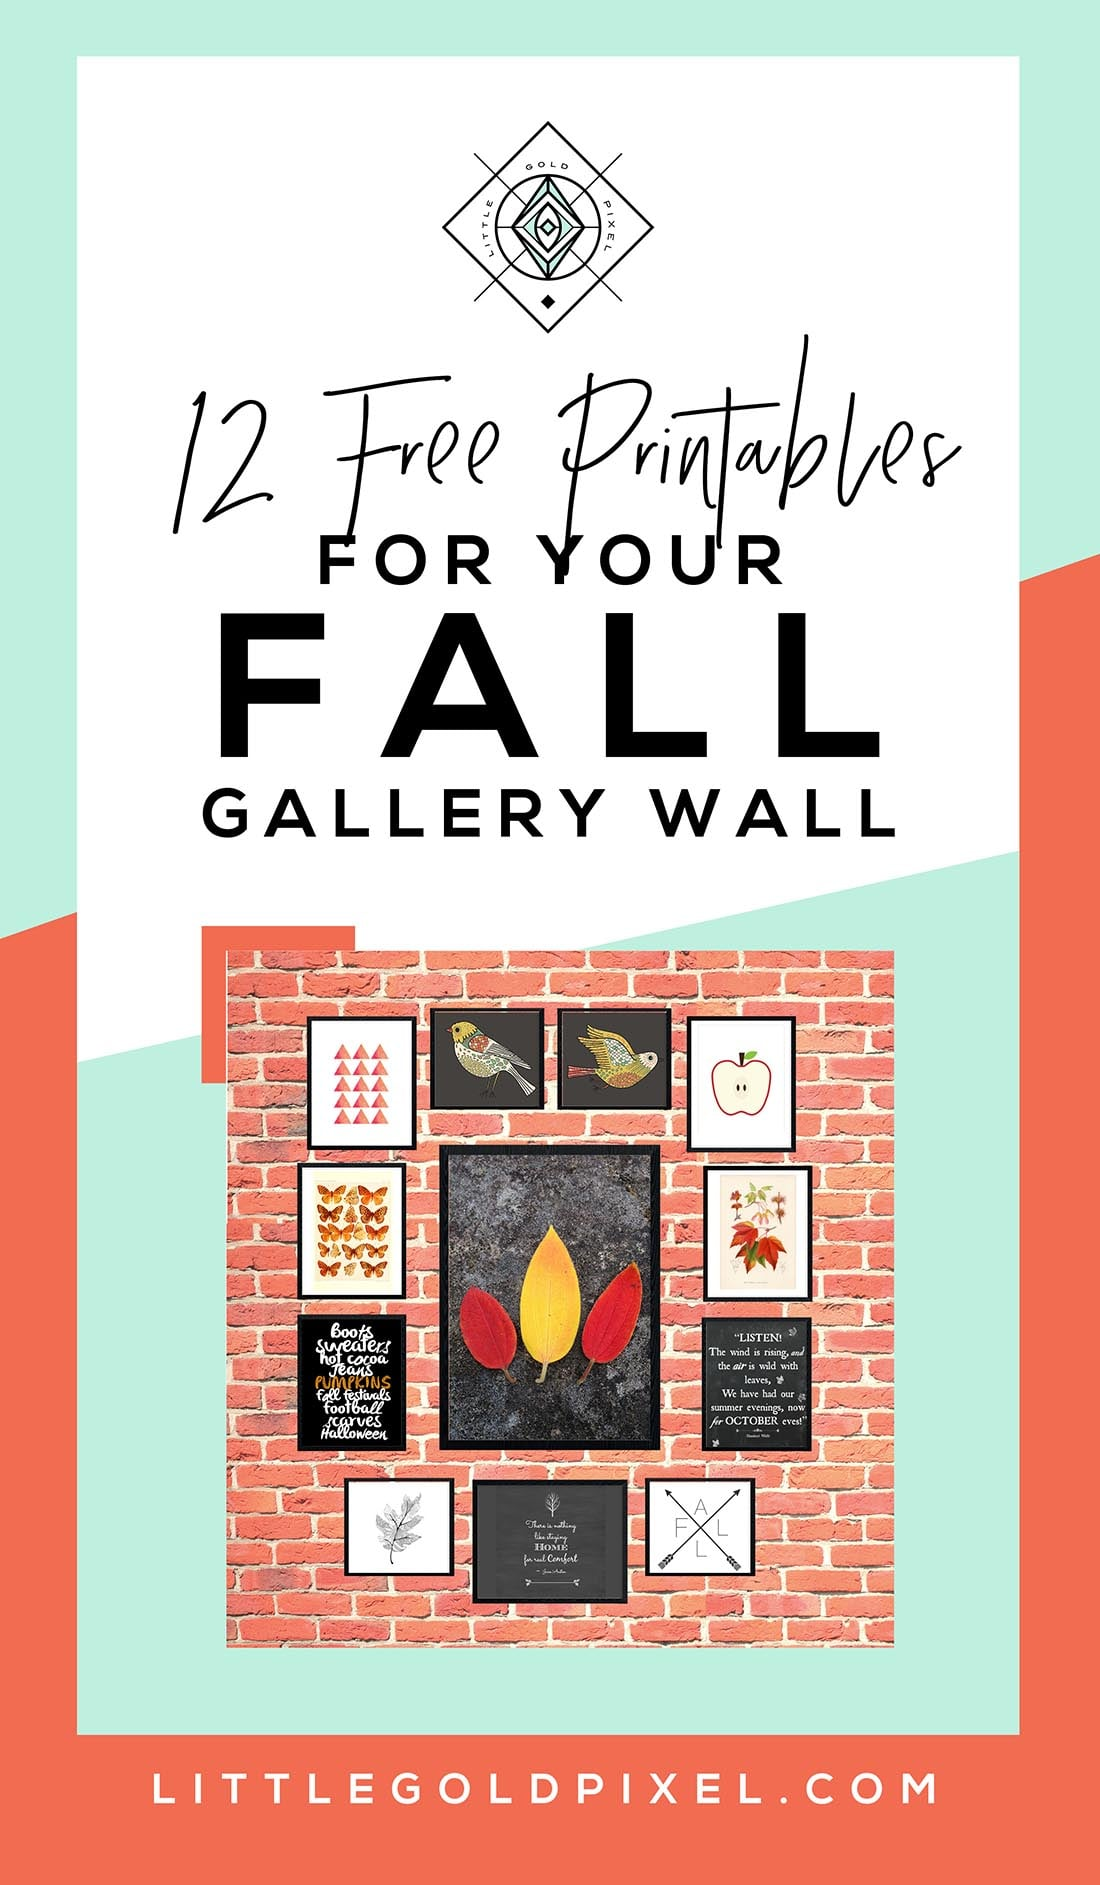 Fall Gallery Wall: 12 Bold & Modern Free Printables • Little Gold Pixel • #fallgallerywall #fallprintables #freeart #freeartprintables #freebies #halloween #autumn #october